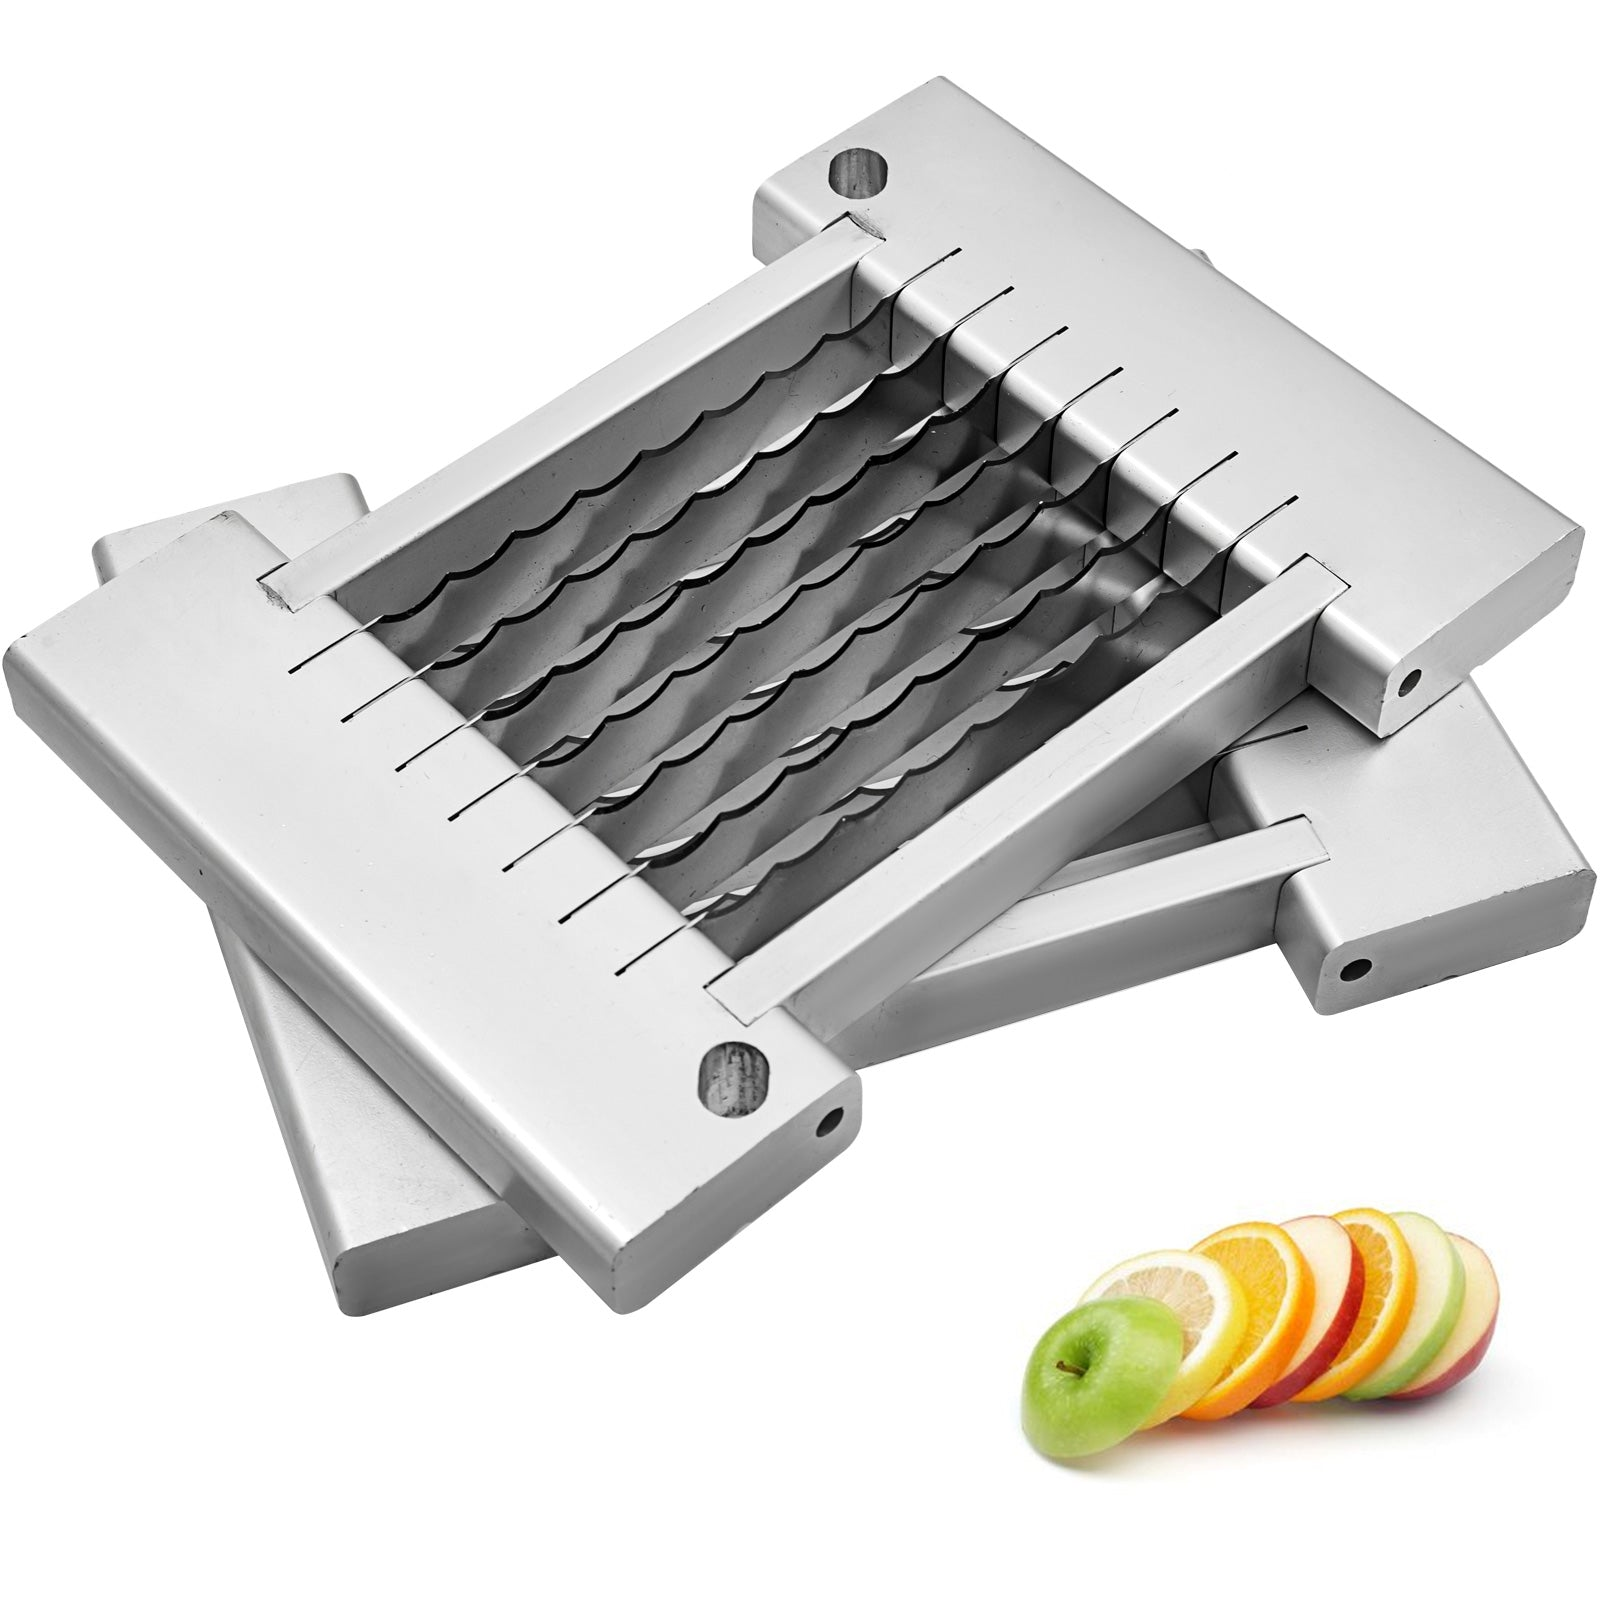 "1/4"" Steel Blades Tomato Slicer Onion Cutter Vegetable Dicer Manual Cutting"